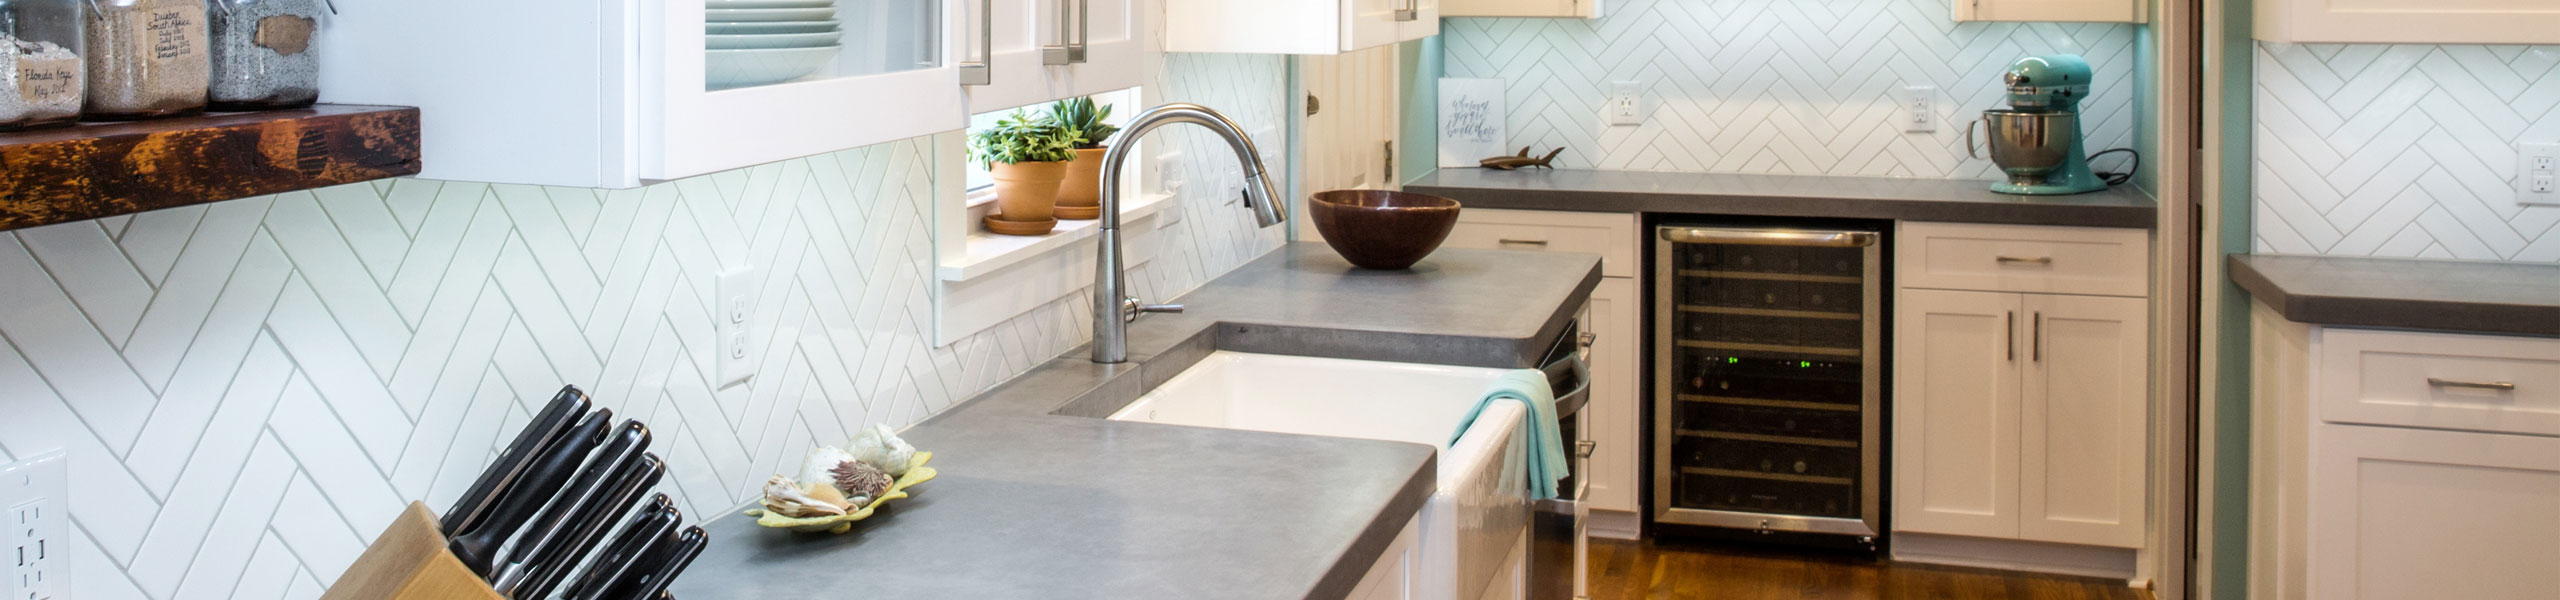 Service Information :: Genesis Custom Construction :: General Contractor ::  Whole House, Additions, Kitchen U0026 Bath Remodeling And Renovation ::  Morehead ...